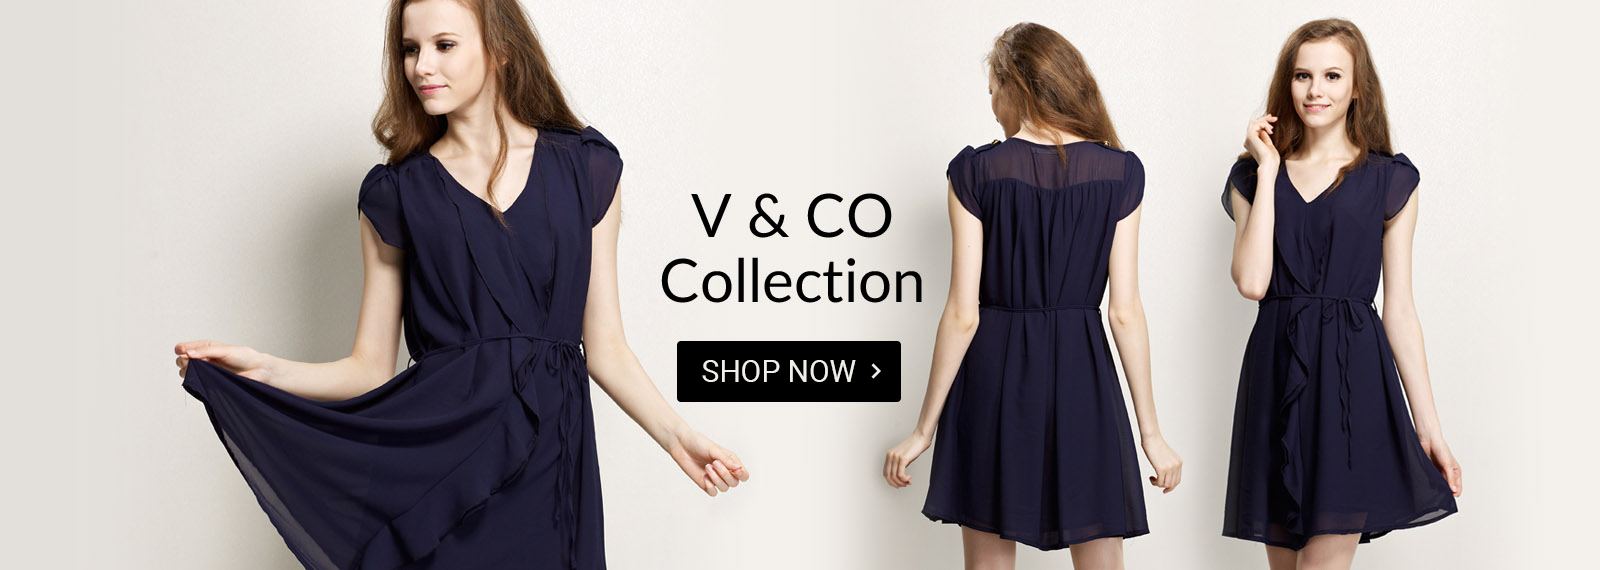 V & Co Collection